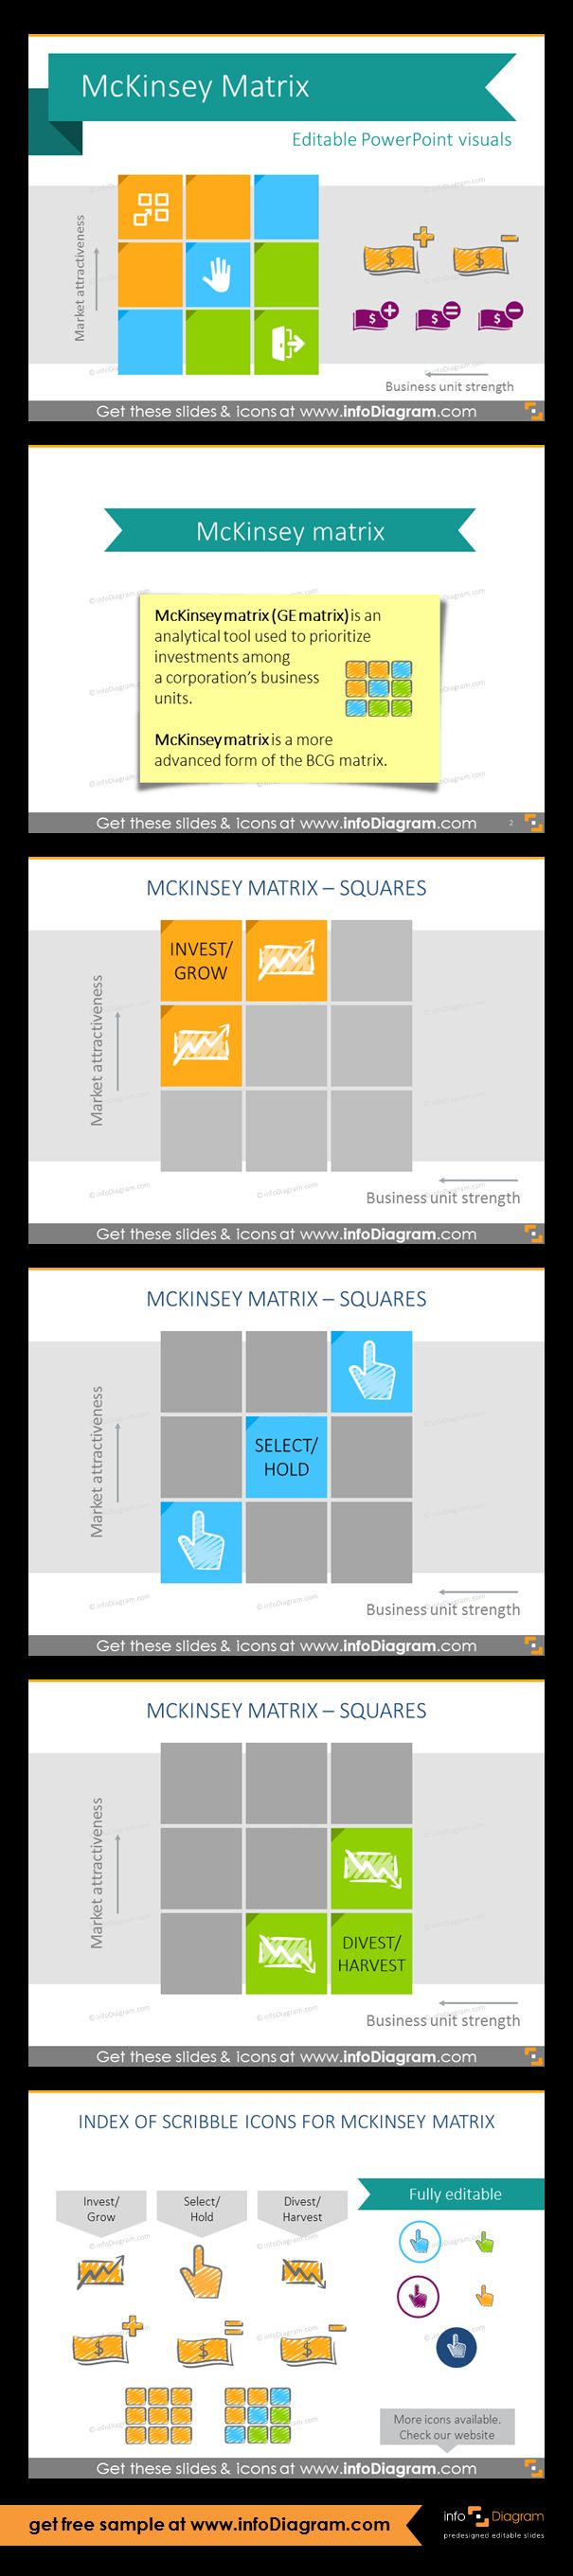 Collection of McKinsey matrix (so called GE Matrix) visual layouts as pre-designed PowerPoint slides. Use this presentation to educate about investment strategies. Fully editable style. Size and colors easy to adjust using PowerPoint editor. Definition slide of GE / McKinsey matrix, its aims, nine cell matrix template with colorful squares with different elements outlined, index of  scribbled icons representing McKinsey matrix categories.